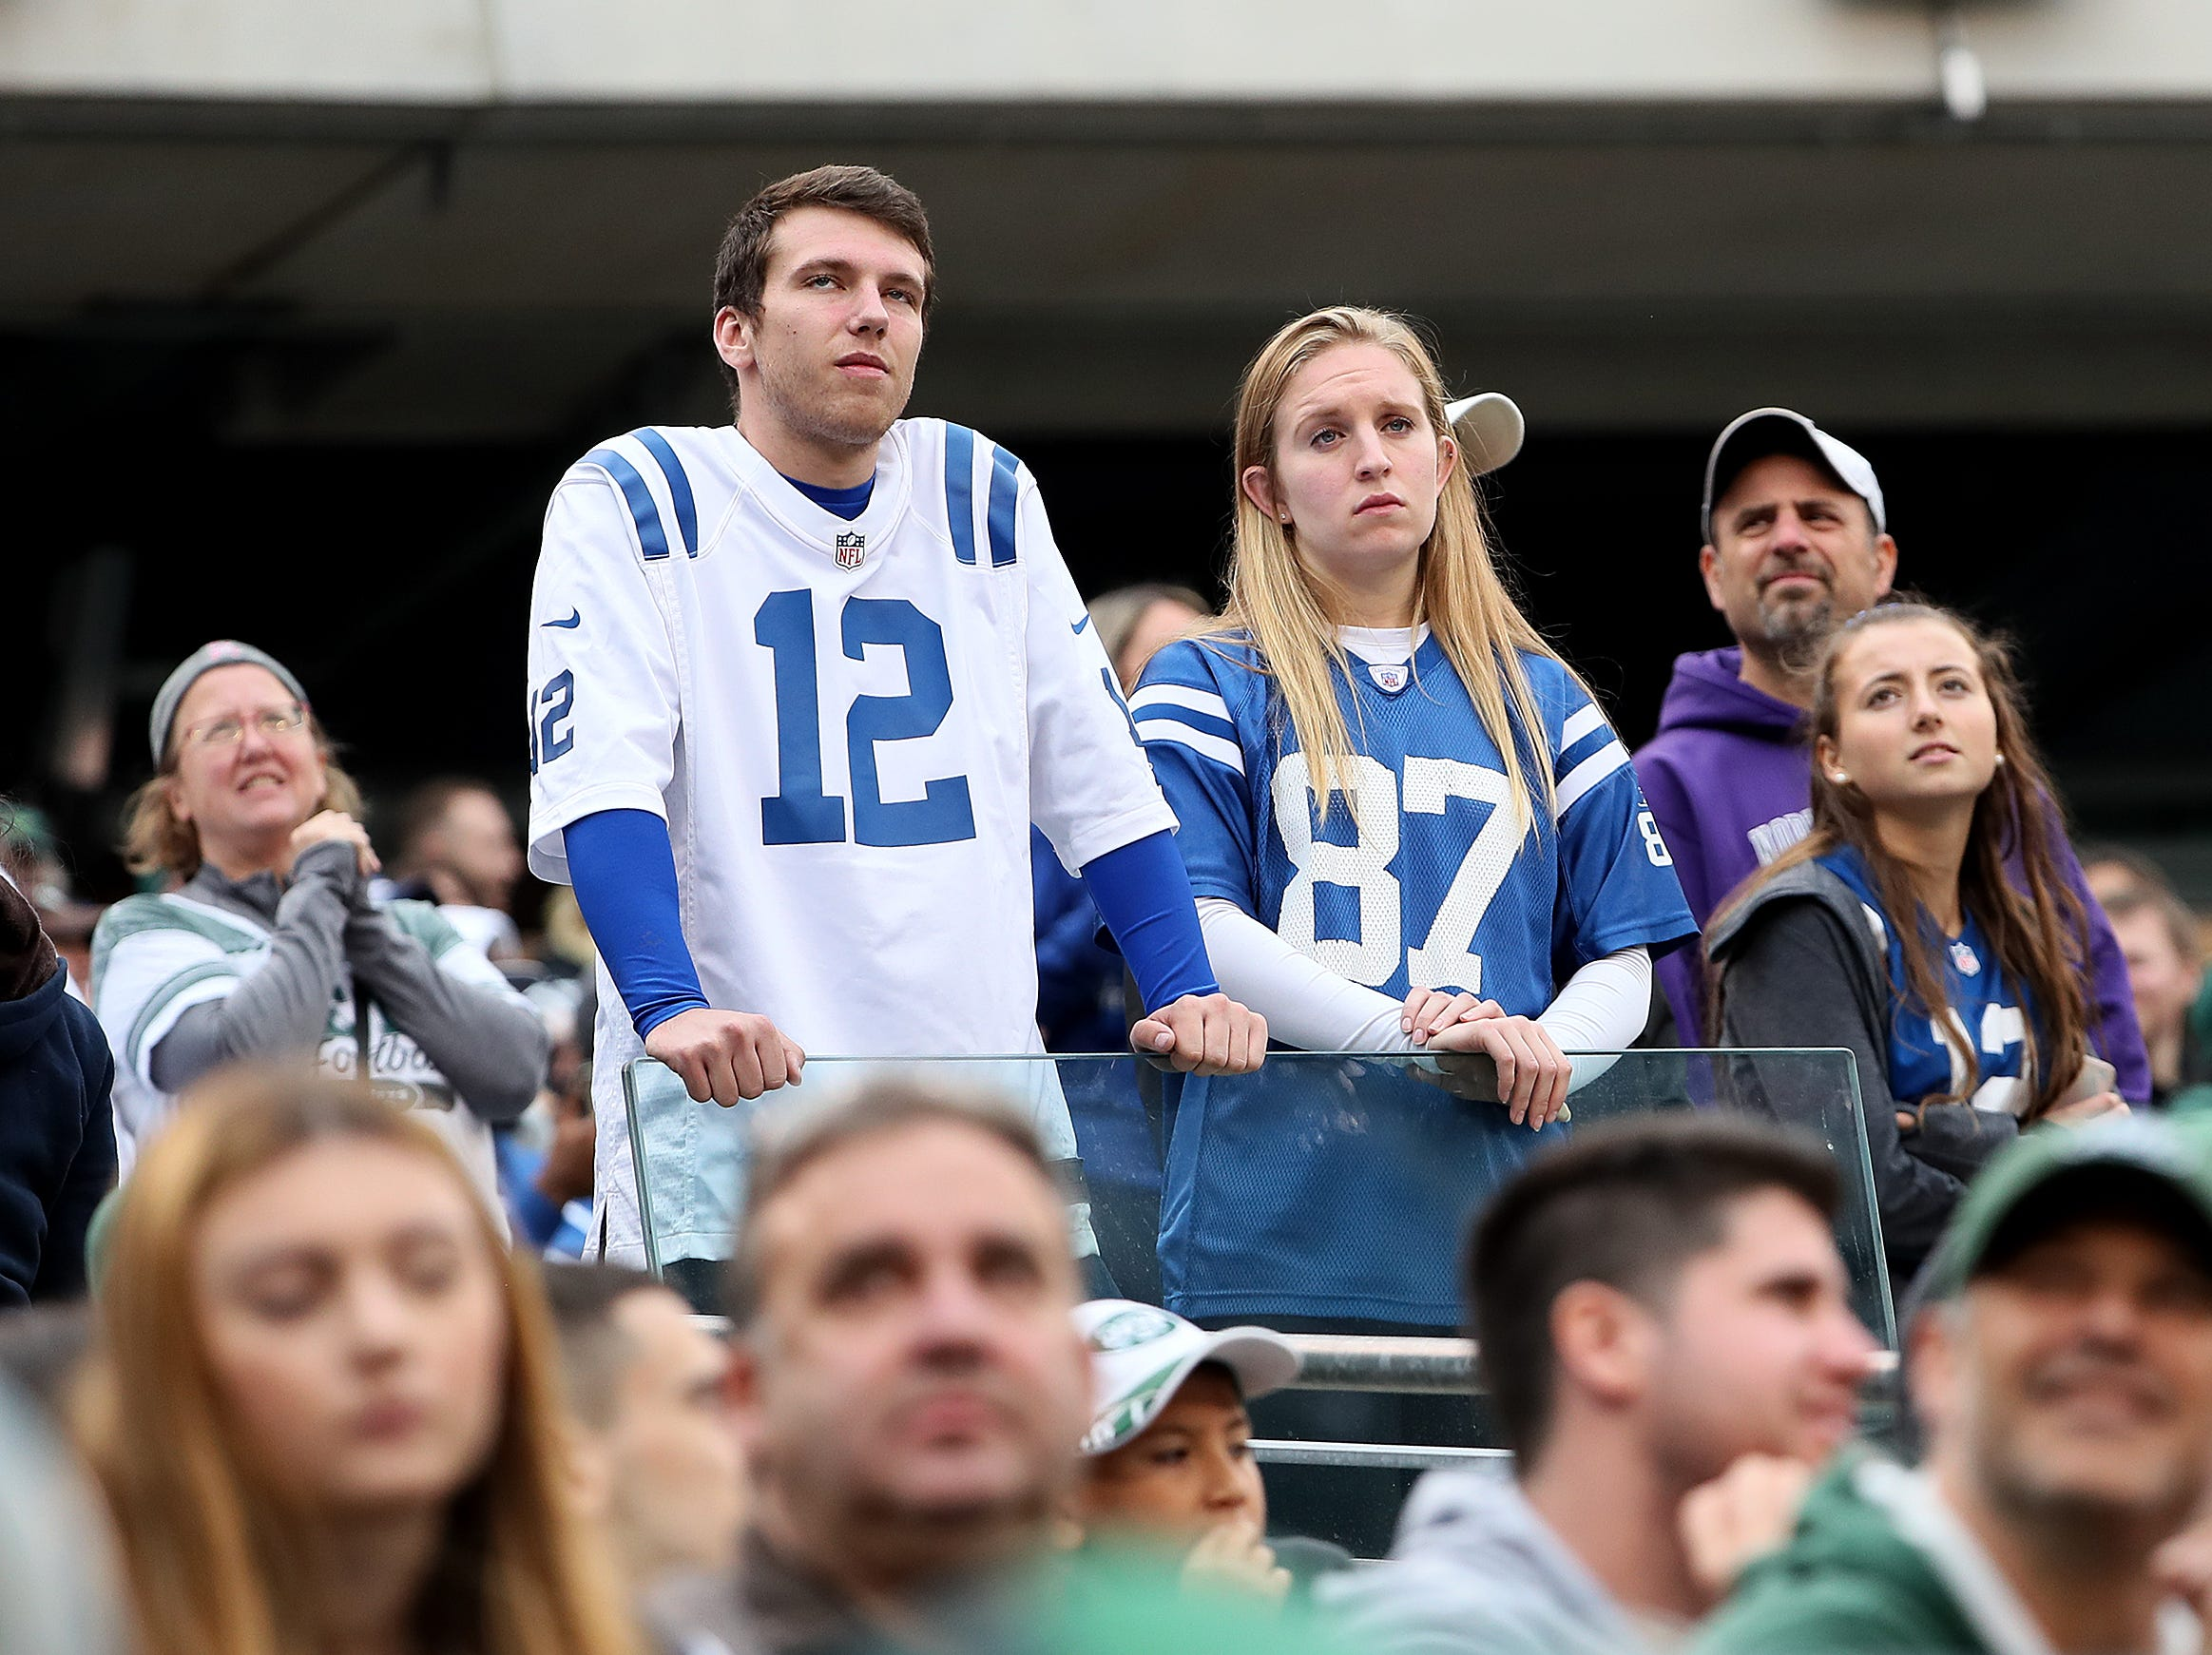 Dejected Indianapolis Colts fans look on in the fourth quarter of their game against the New York Jets at MetLife Stadium in East Rutherford, N.J., Sunday, Oct. 14, 2018.